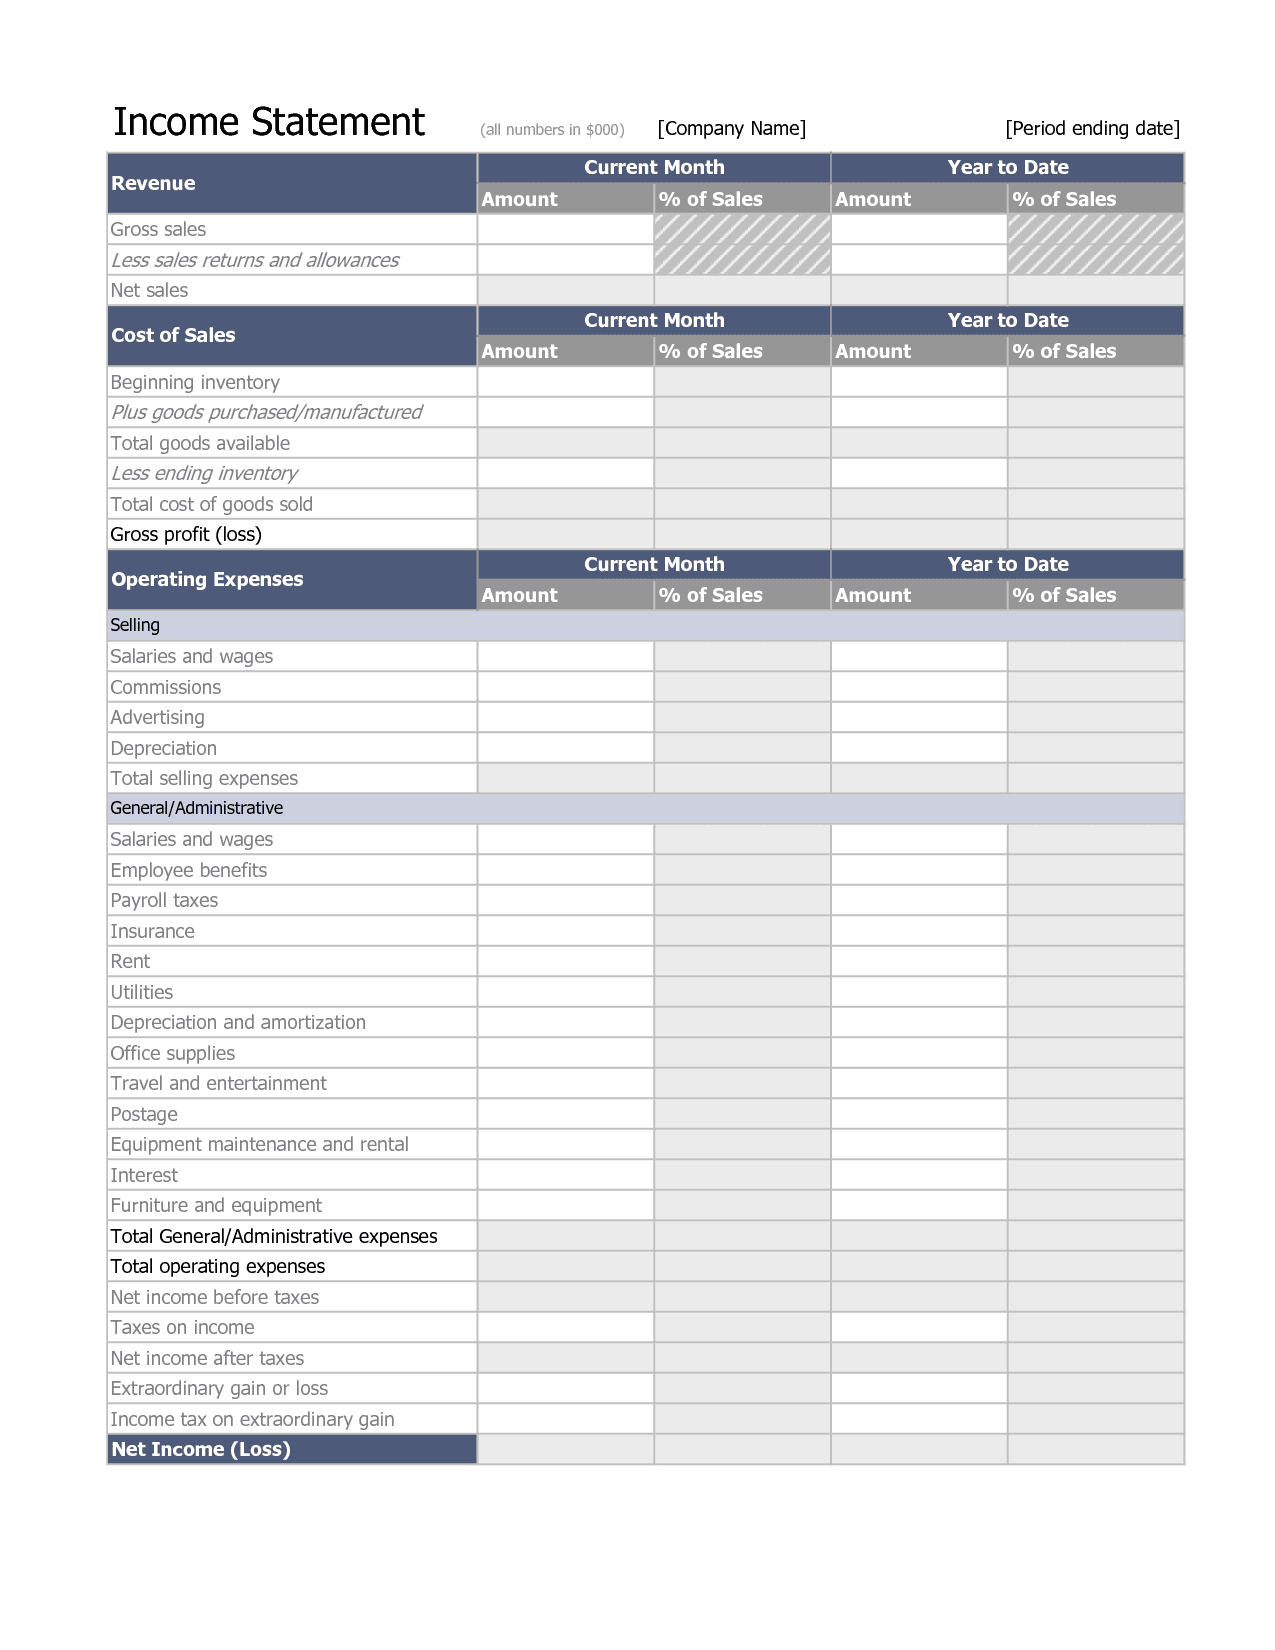 Income And Expense Statement Template Excel Income And Expense Statement Template Expense Spreadshee Expense Spreadshee Free Income And Expense Worksheet